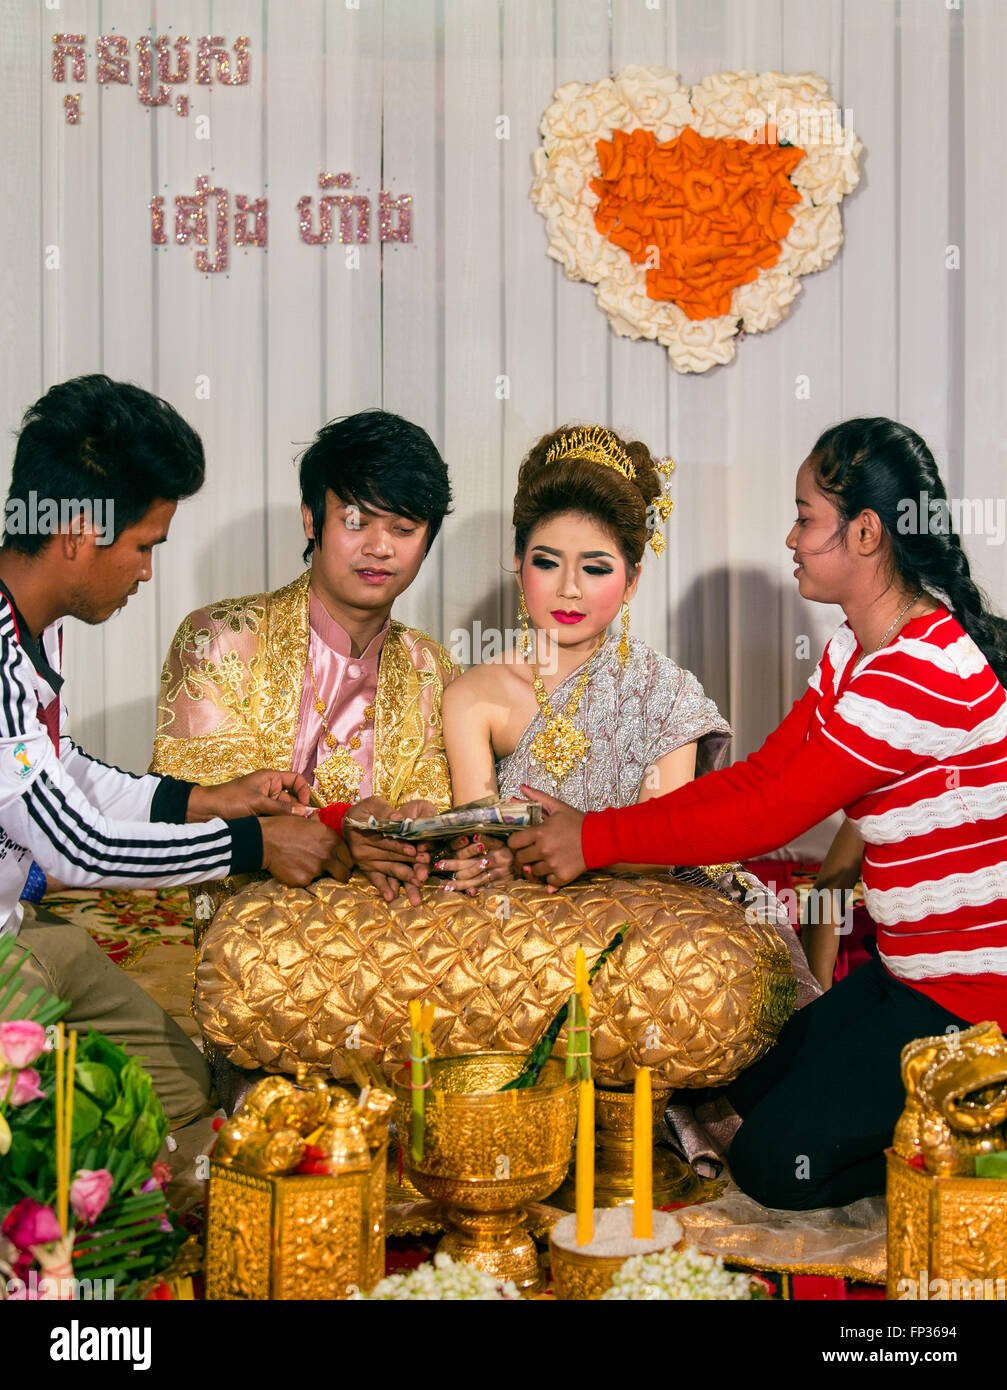 Traditional wedding, cash gifts for the newlyweds, Senmonorom, Sen Monorom, Mondul Kiri, Province Mondulkiri, Cambodia - Stock Image